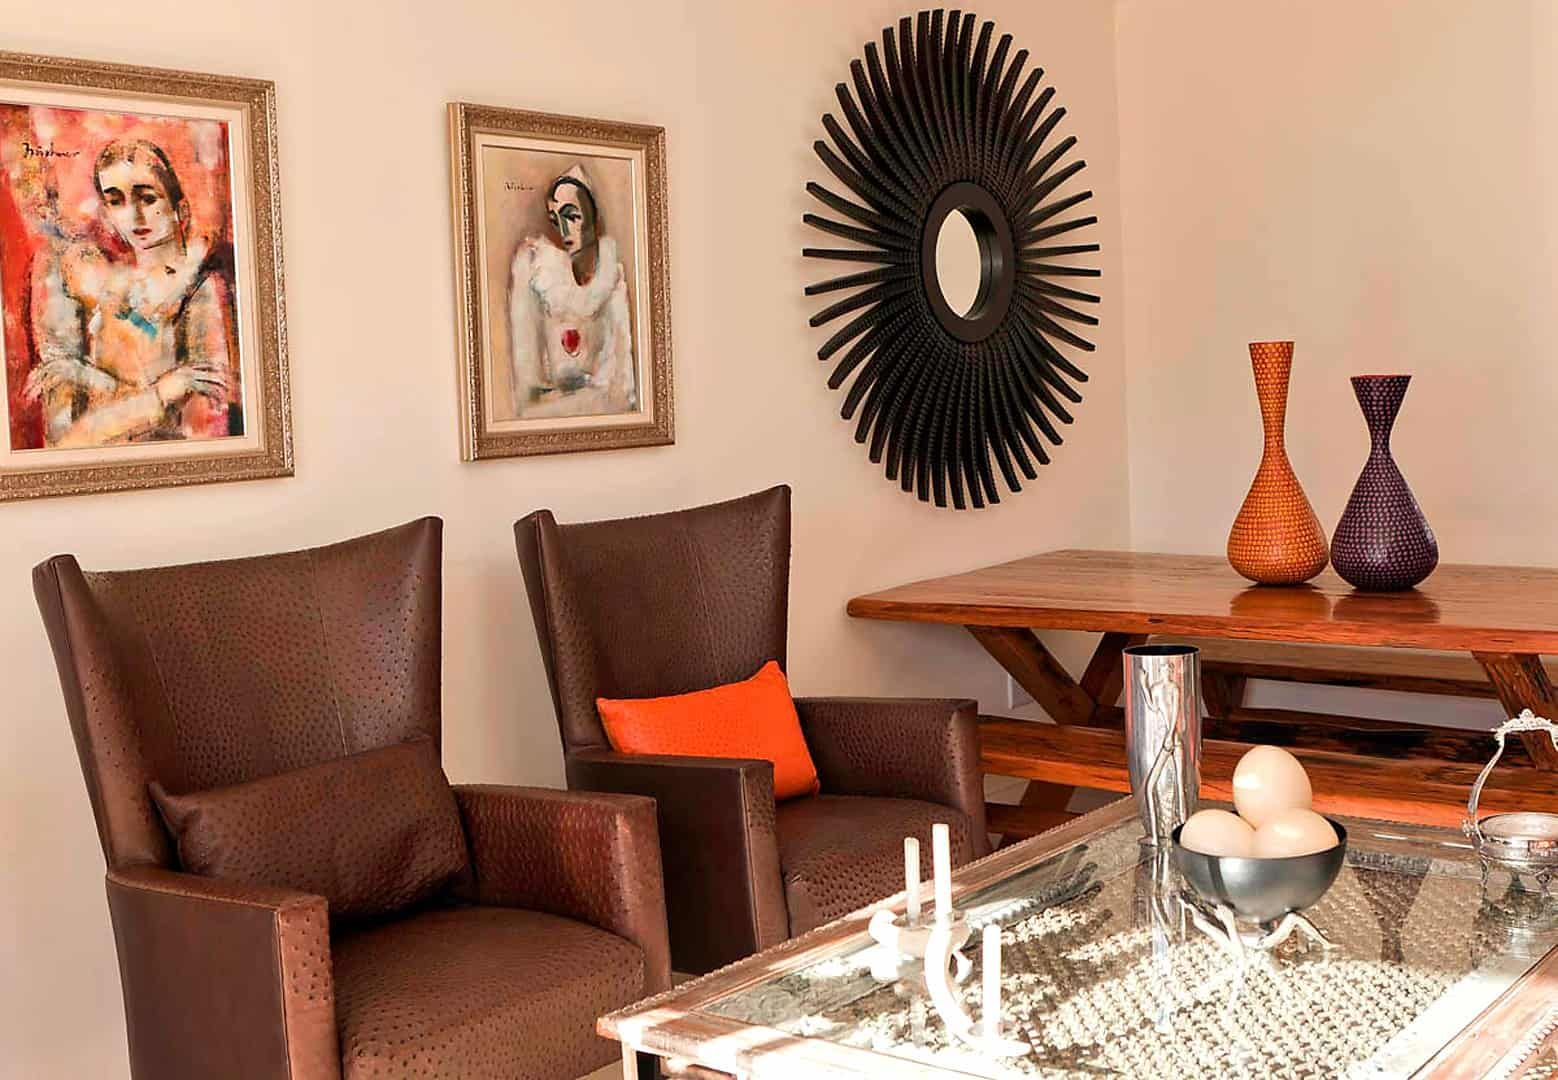 African Beaded Arm Chairs Yoruba People Nigeria In This Post We Will Be Showcasing Some Af African Furniture African Living Rooms African Interior Design African decor dining room